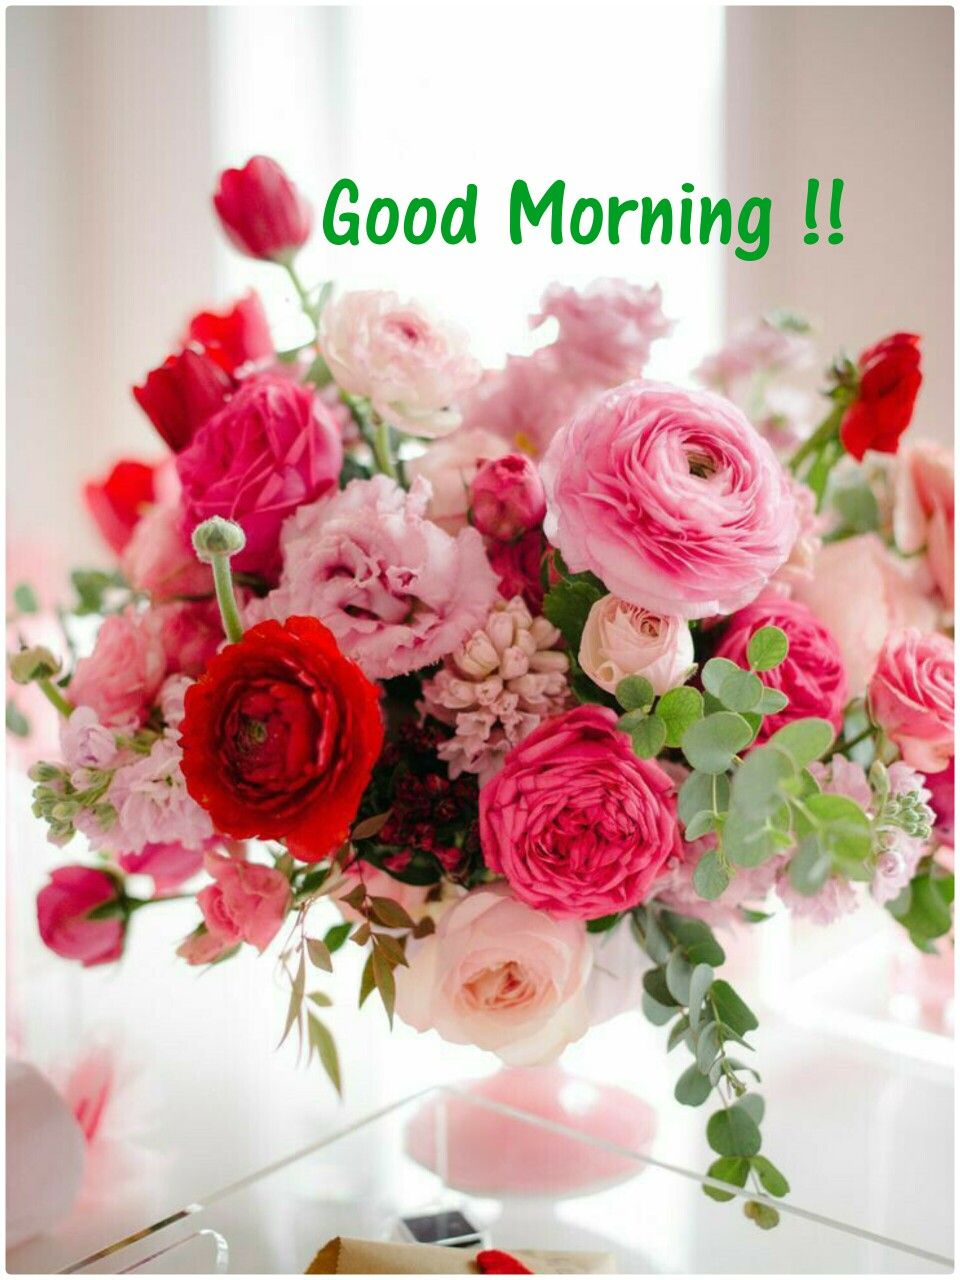 Good Morning Have A Beautiful Day Everyone Good